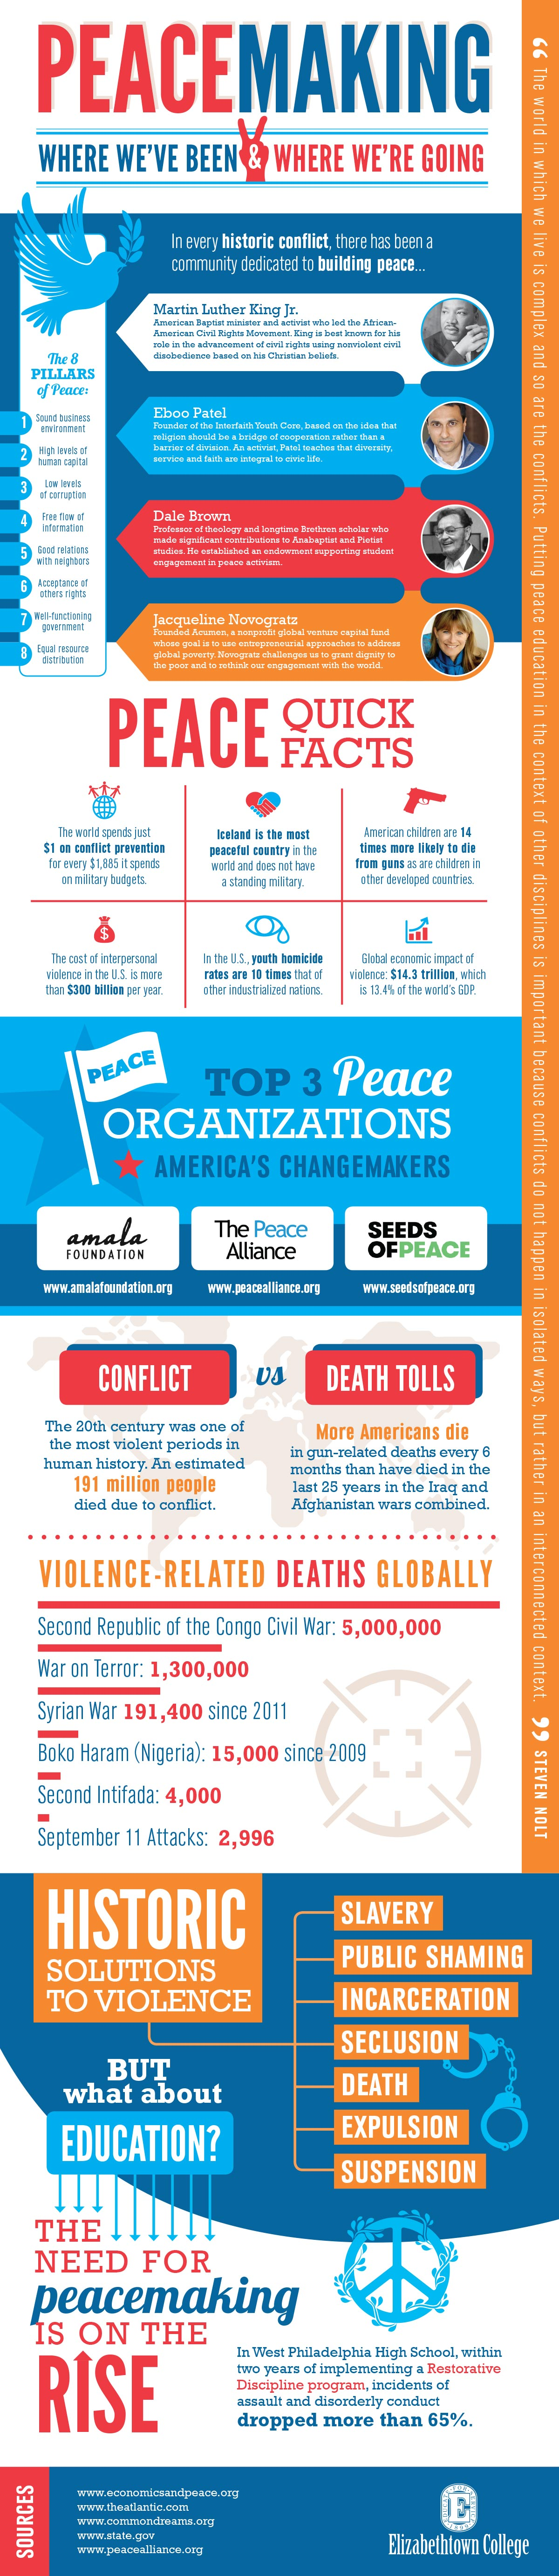 a large infographic detailing the history and current state of peacemaking efforts.